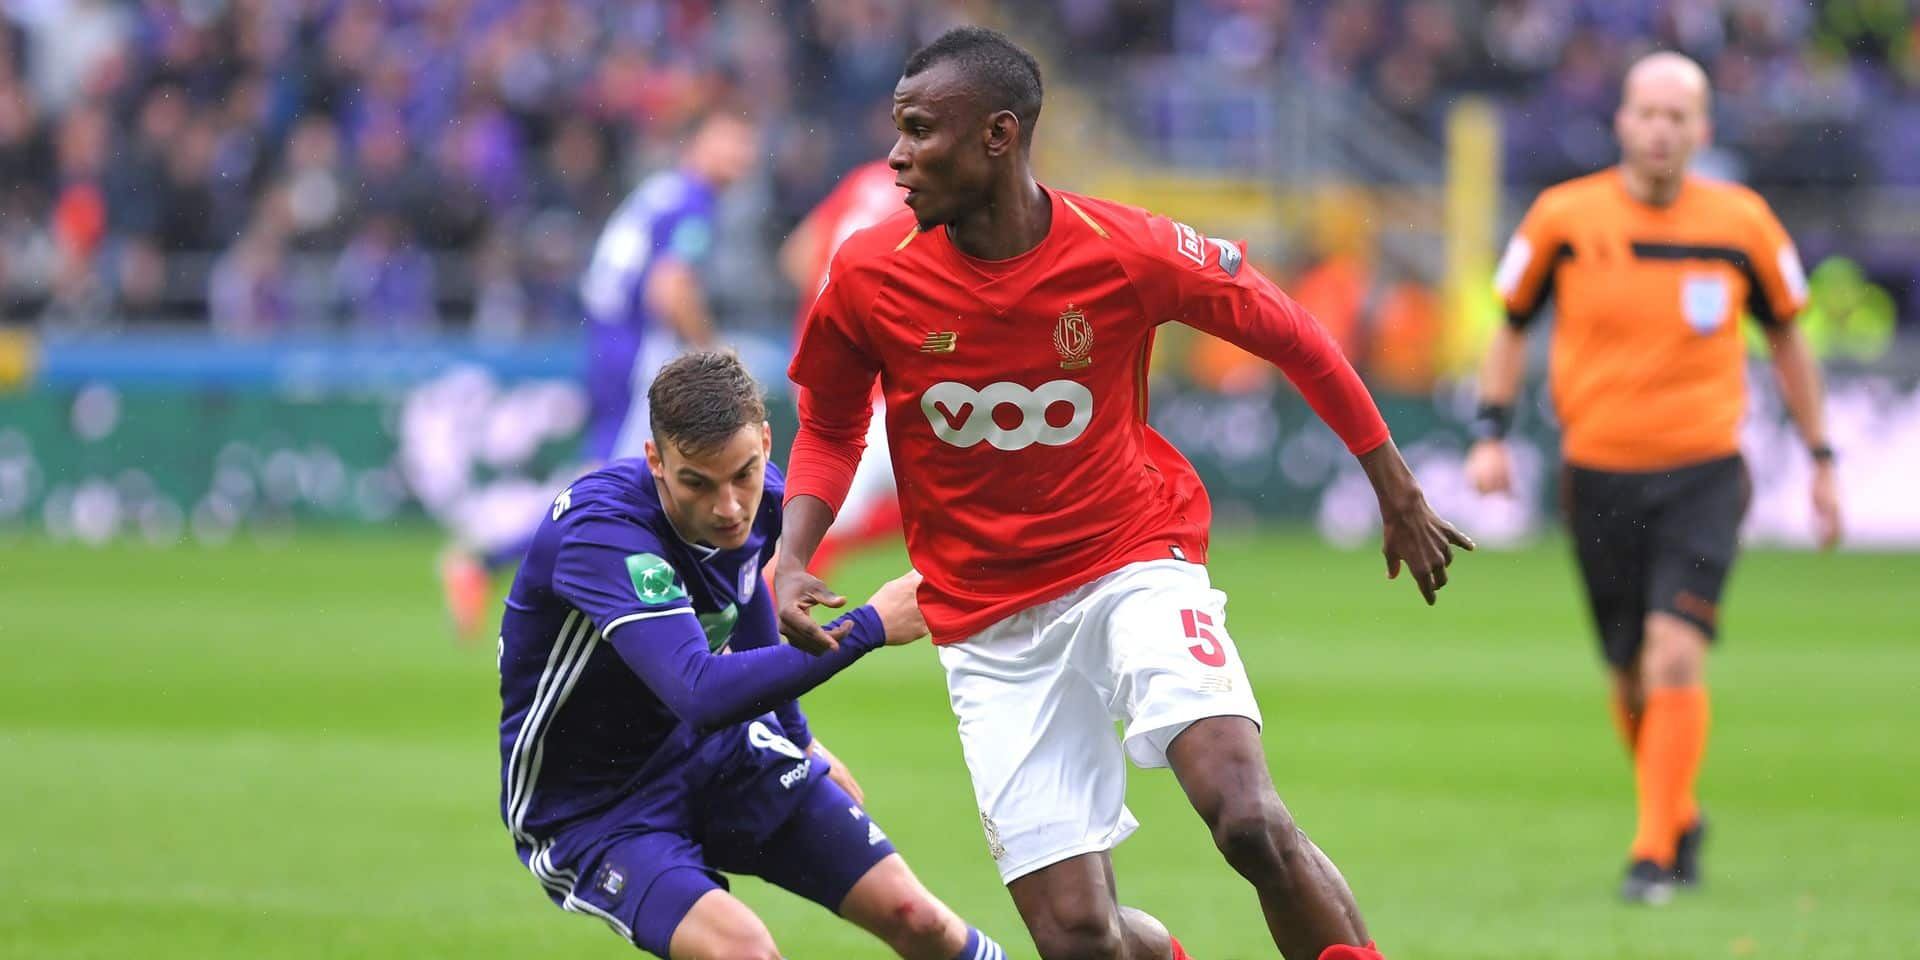 Anderlecht's Pieter Gerkens, Standard's Uche Agbo and fight for the ball during the soccer match between RSC Anderlecht and Standard de Liege, Sunday 23 September 2018 in Brussels, on the eighth day of the 'Jupiler Pro League' Belgian soccer championship season 2018-2019. BELGA PHOTO LUC CLAESSEN